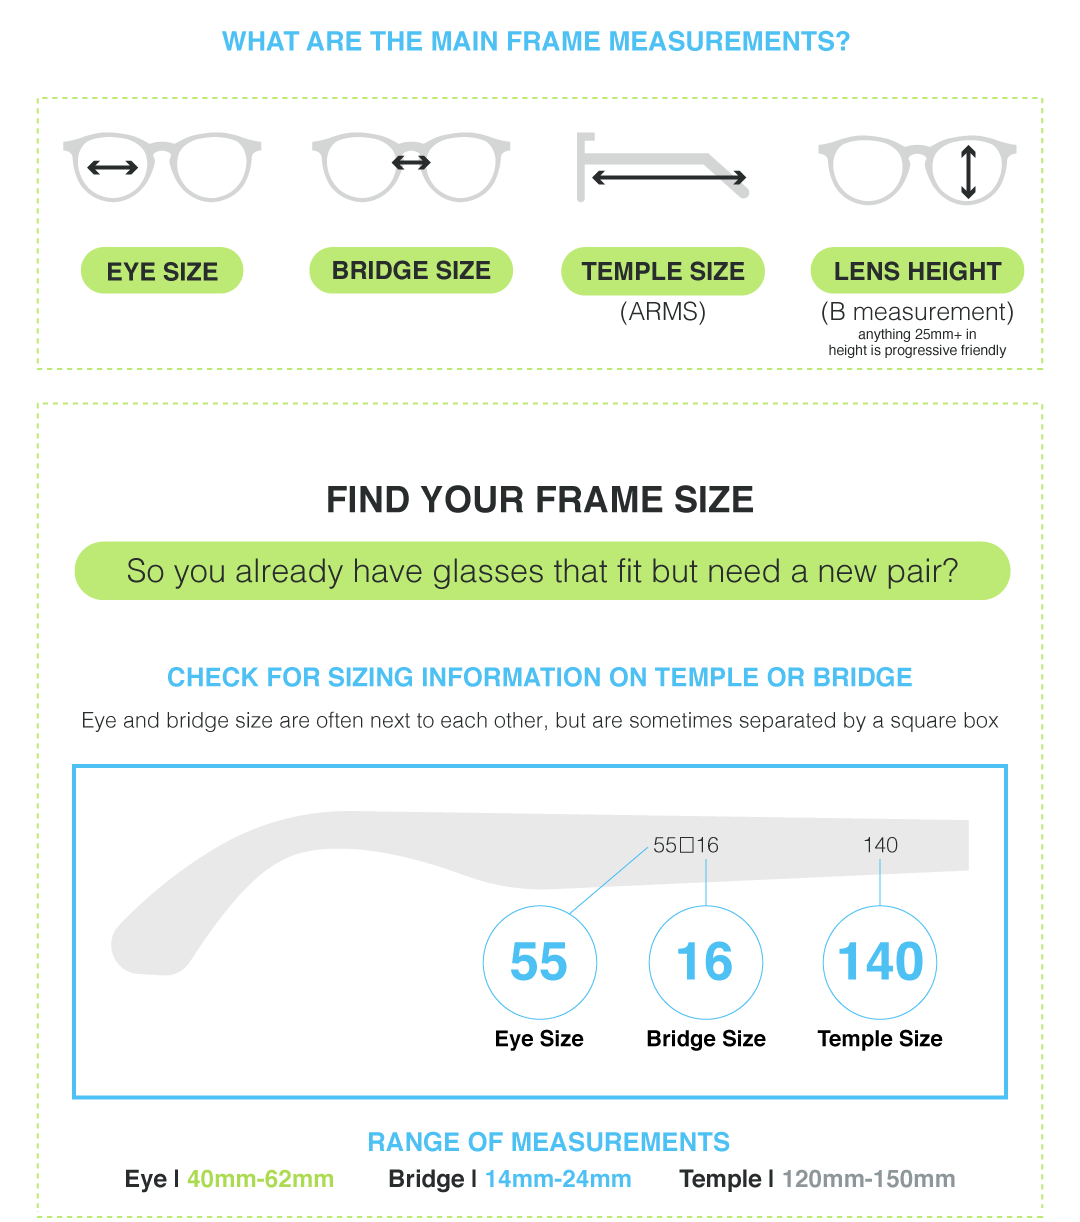 eyeglasses and sunglasses size guide